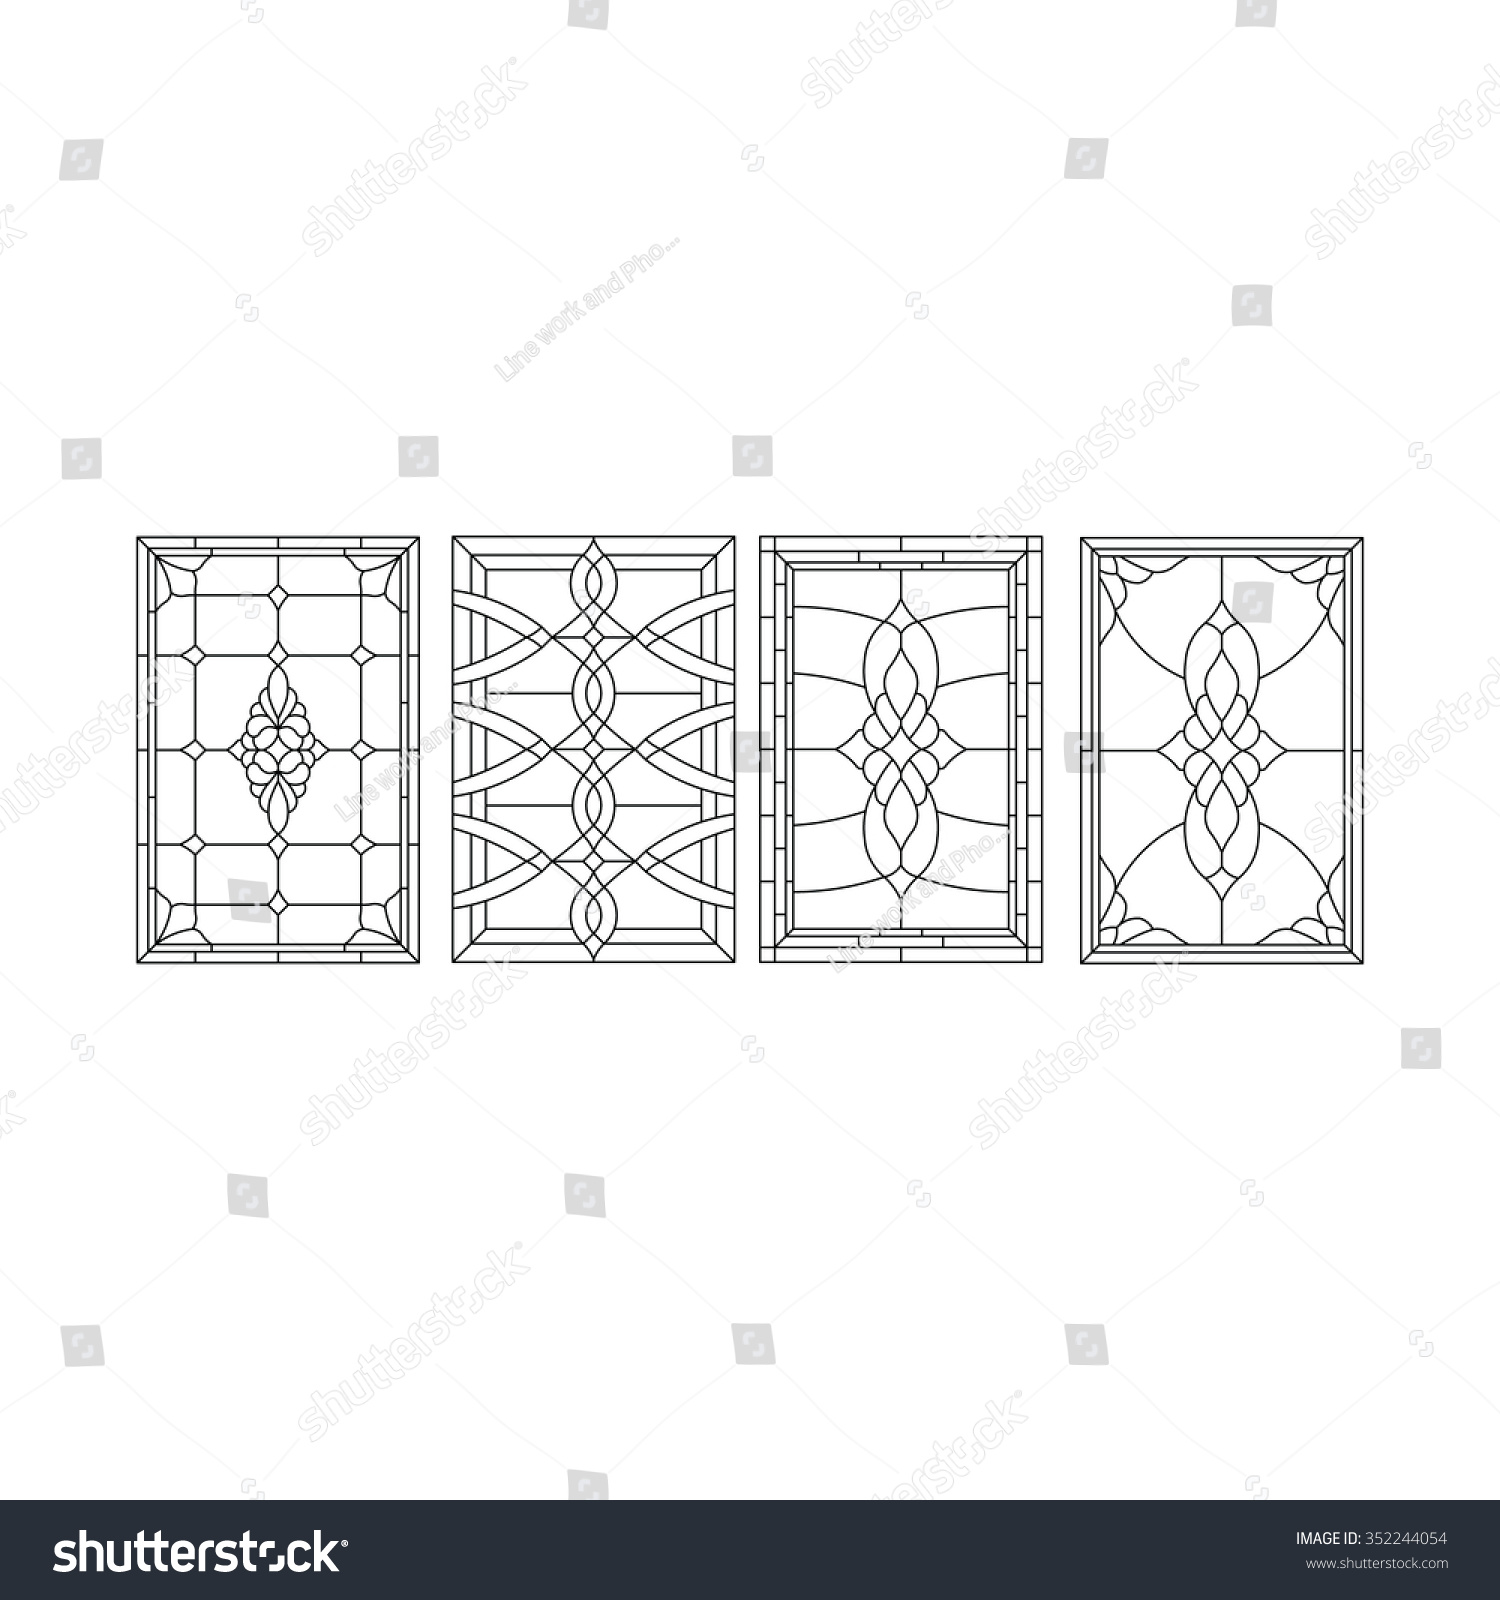 Vintage window door design sketch stock vector 352244054 for Window design sketch